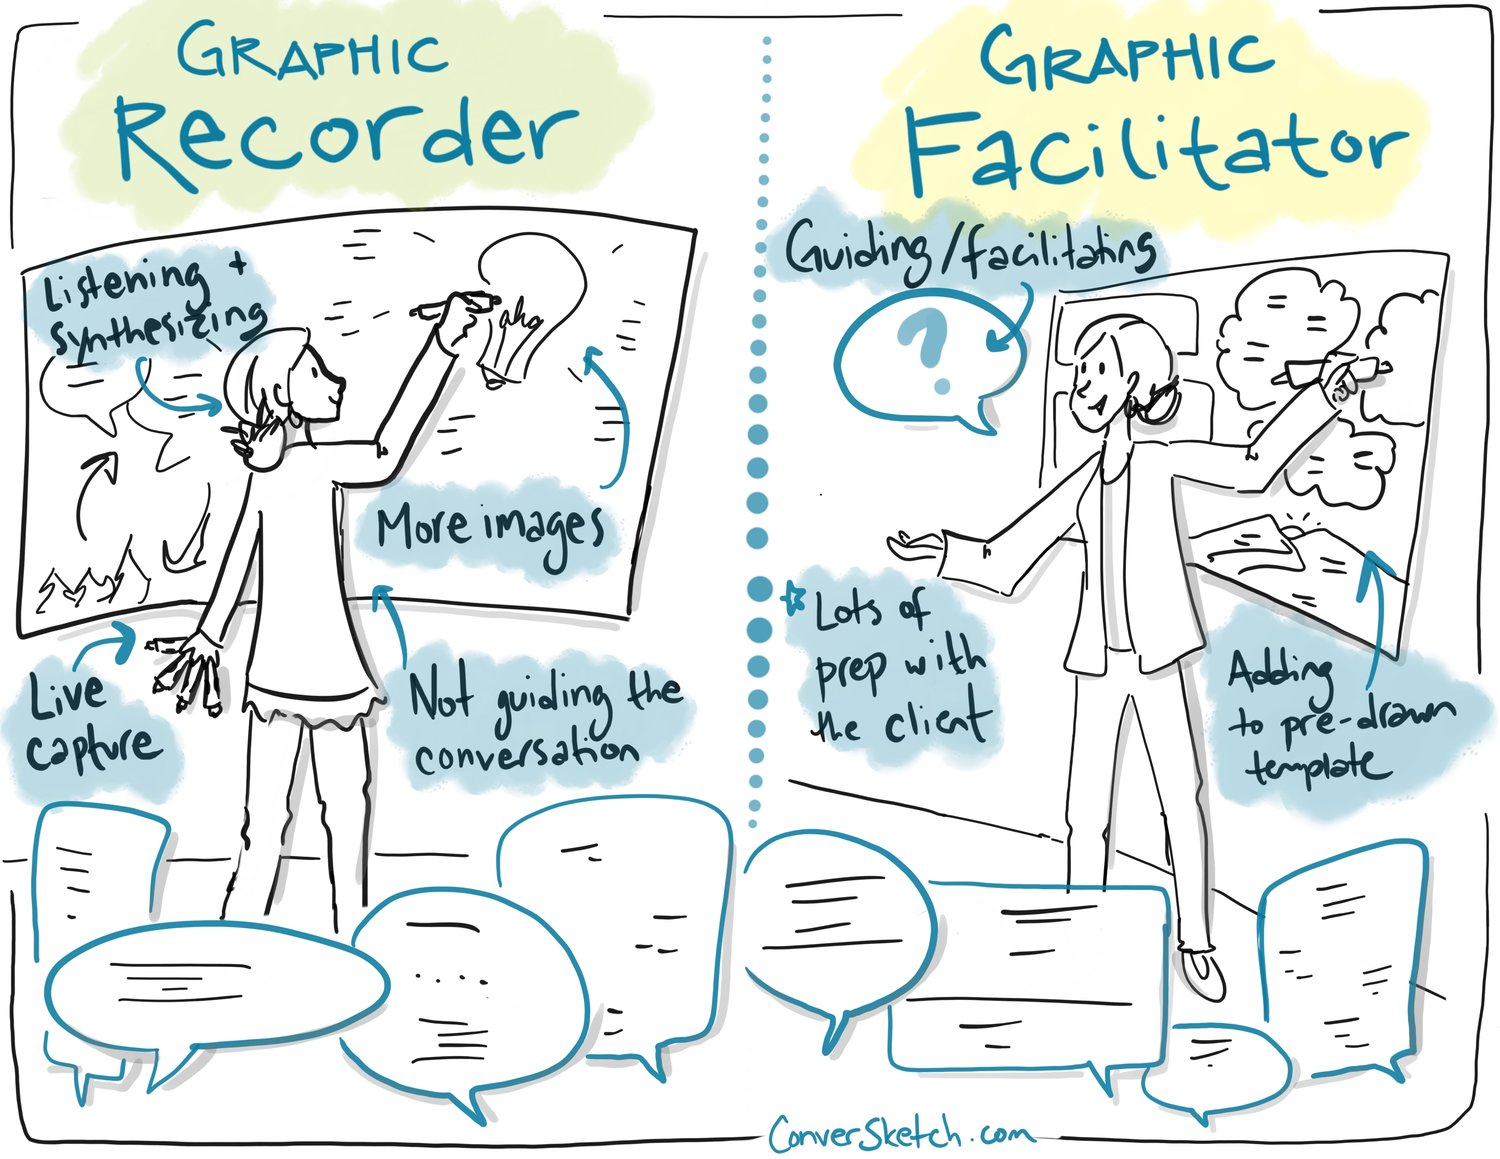 Graphic facilitation is he visual representation of ideas, that helps understanding its meaning.